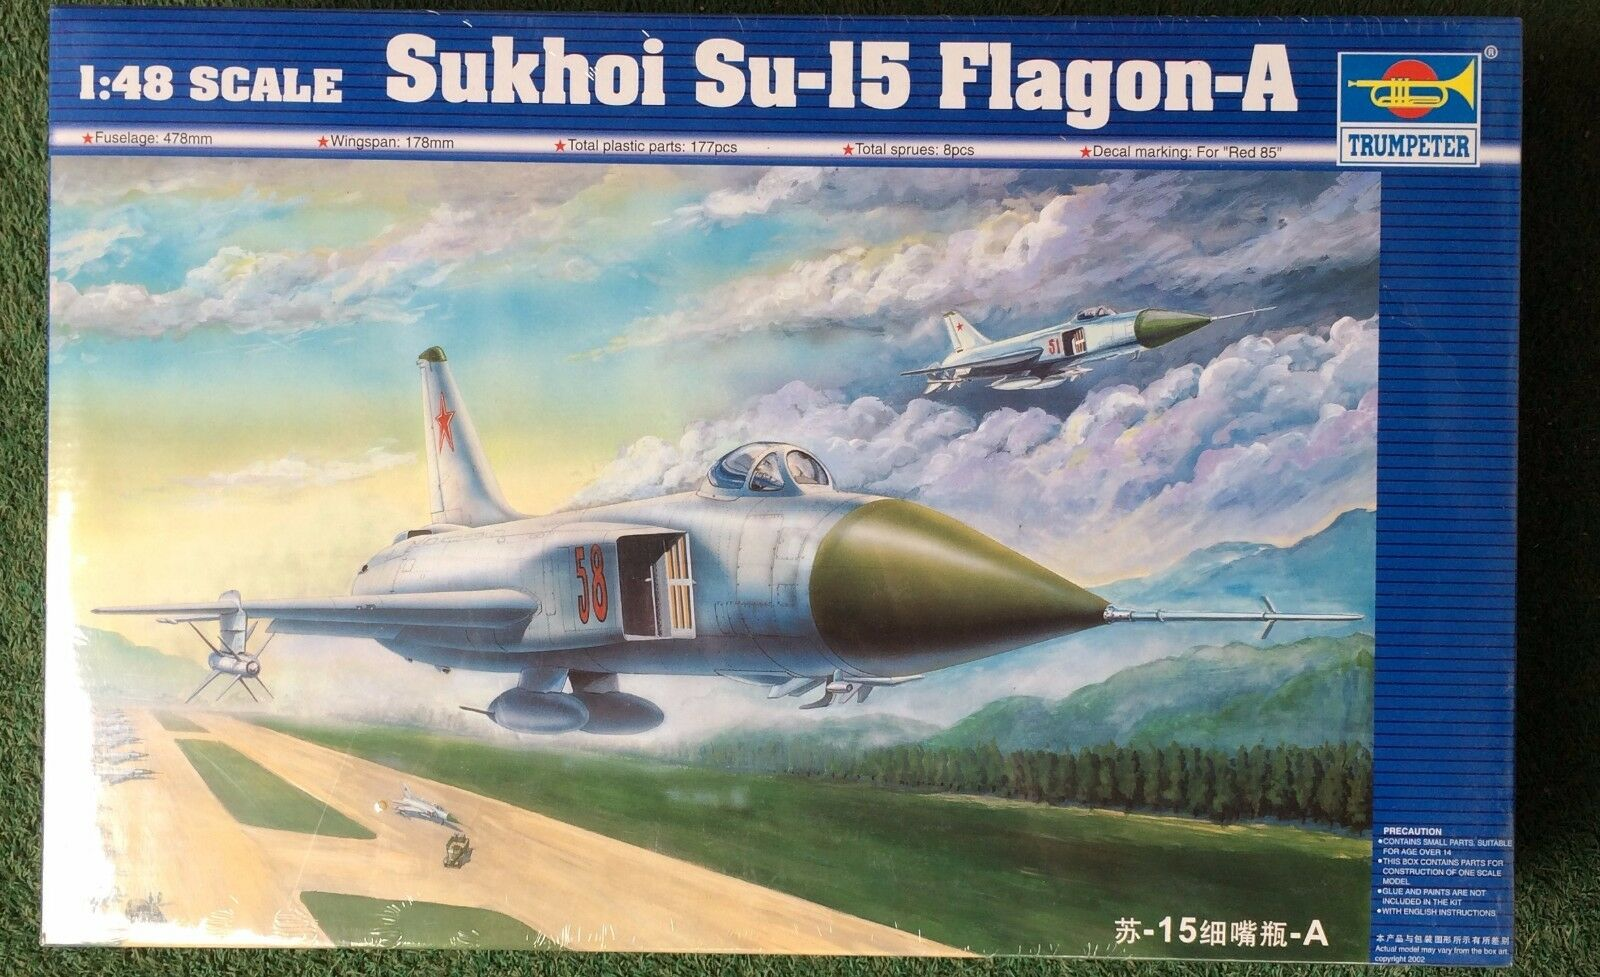 02810 Trumpeter 1 48 Model Sukhoi Su-15 Flagon-A Plane Aircraft Warplane Kit